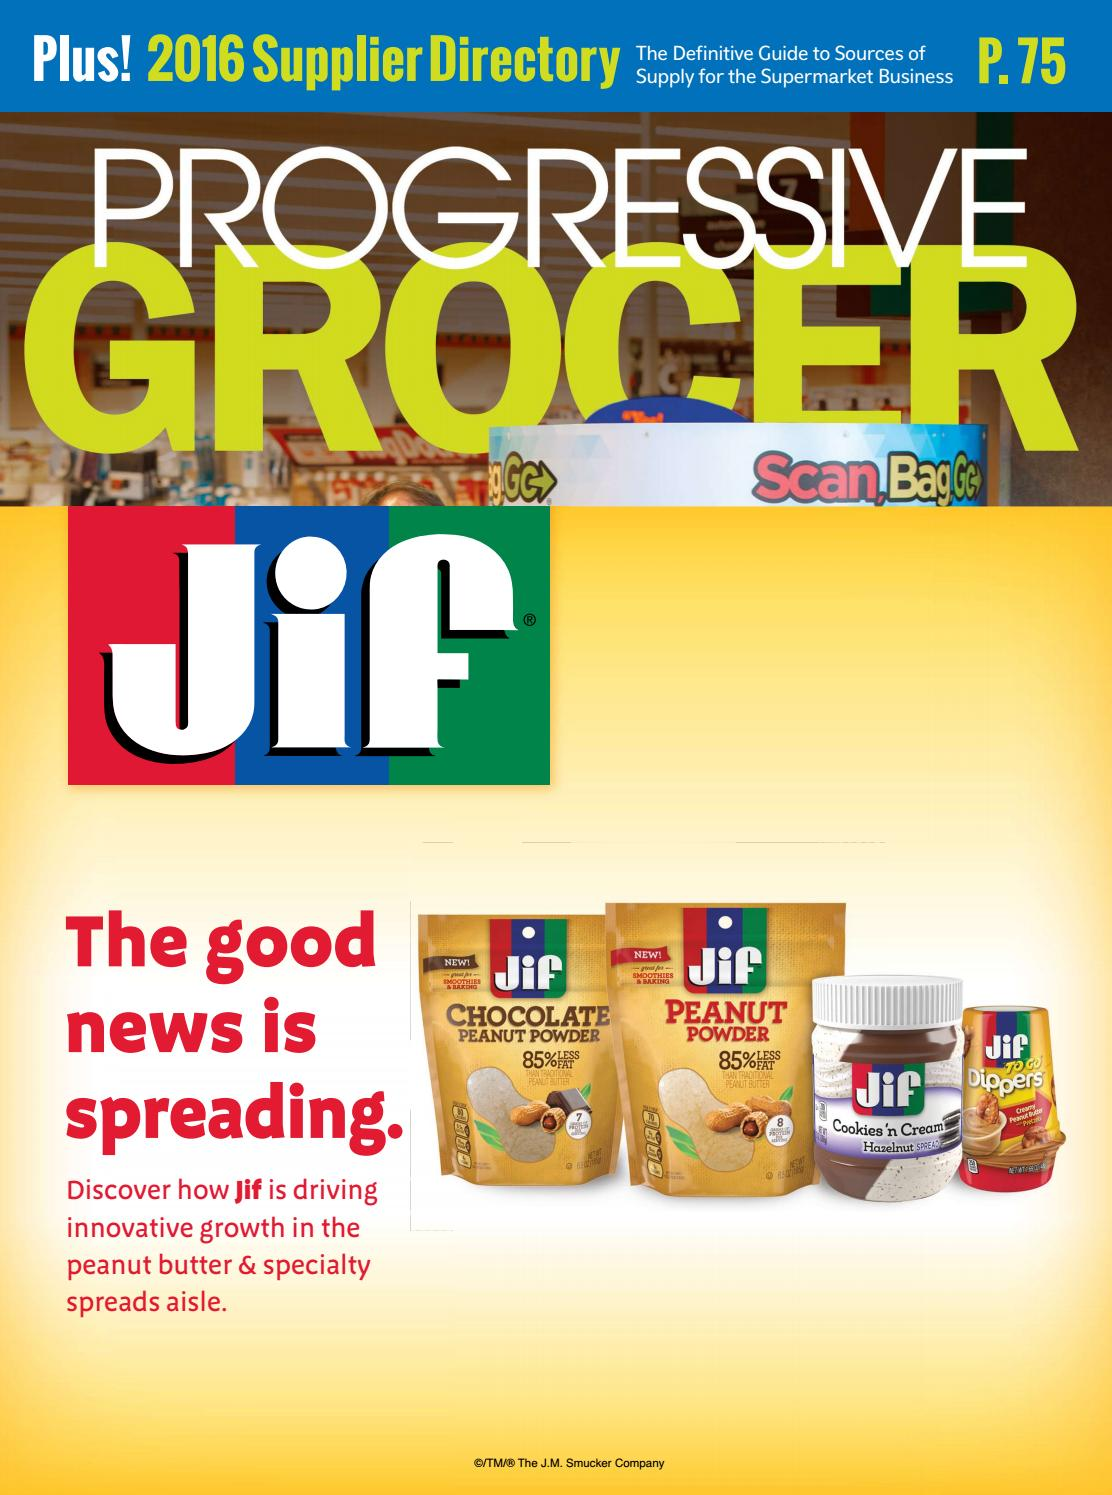 Progressive Grocer - December 2015 by ensembleiq - issuu